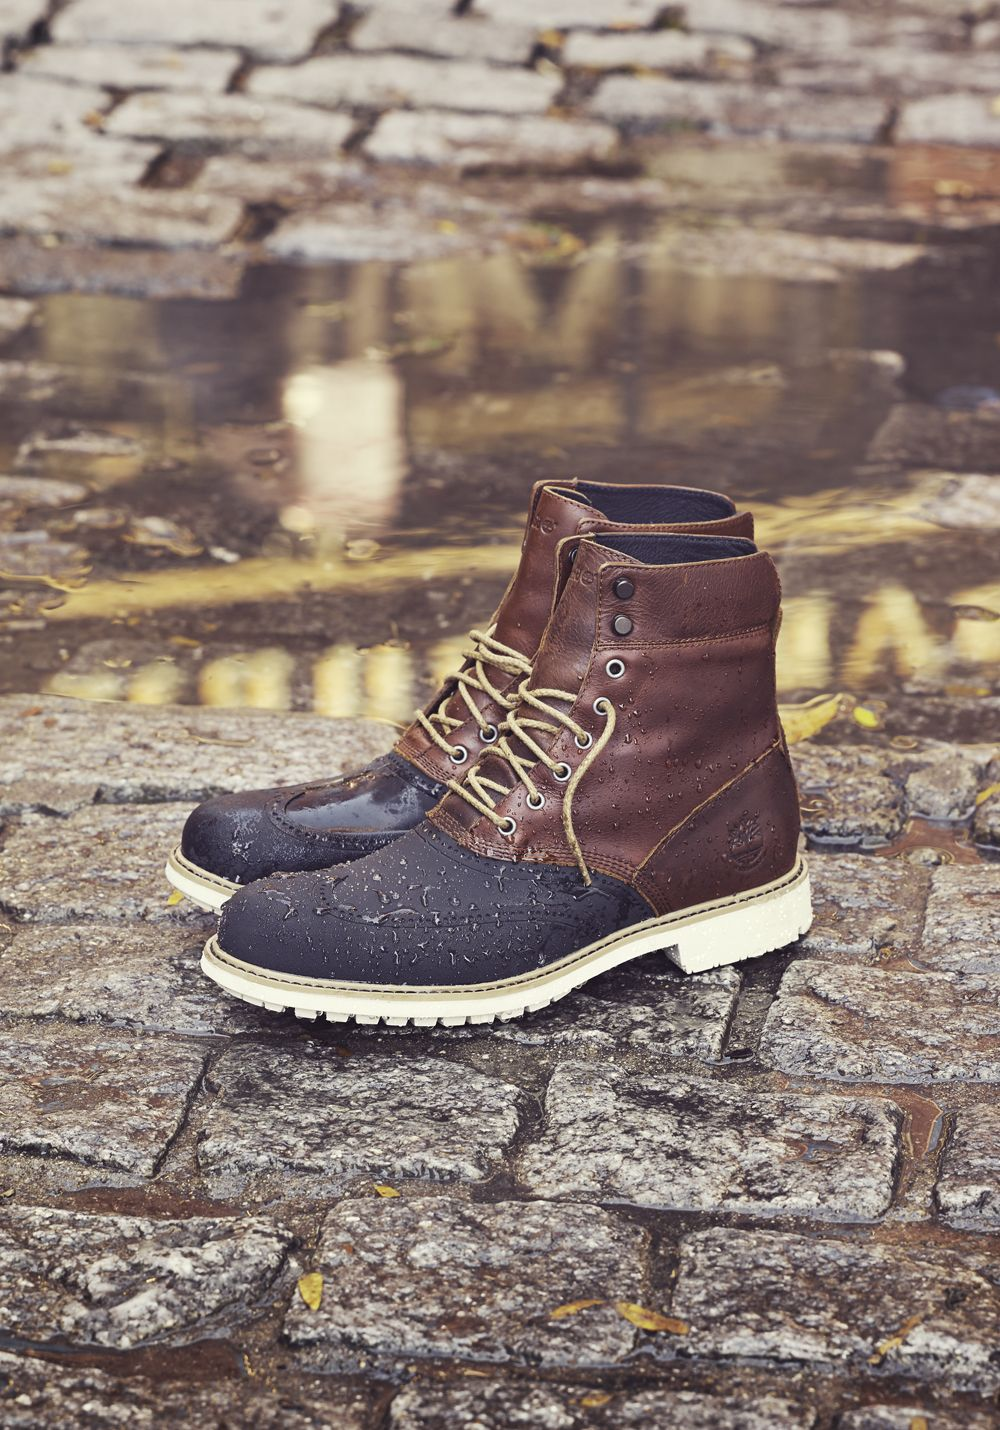 93540fee14f Mens Boots, Hiking Boots & Work Boots | Timberland.com | Lookbooks ...